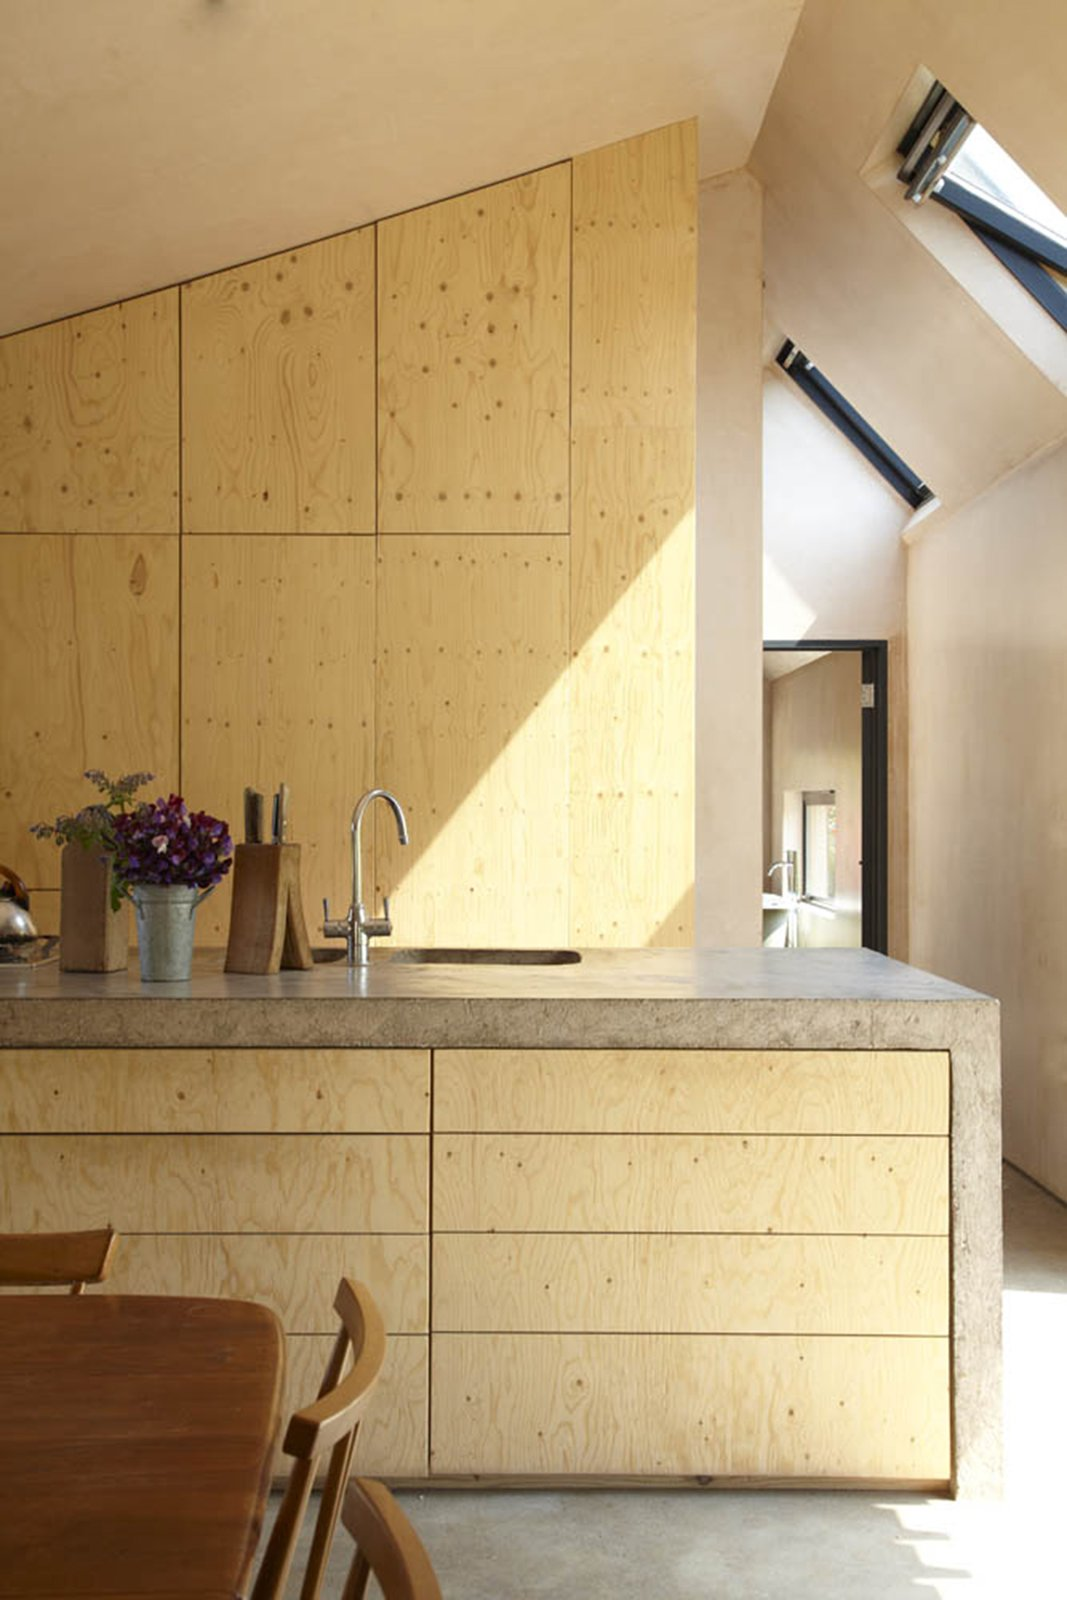 Kitchen, Granite Counter, Drop In Sink, Wood Cabinet, Concrete Floor, and Concrete Counter The minimalist interiors showcase the simple material palette.  Photo 17 of 26 in 10 Buildings We Love by Piers Taylor